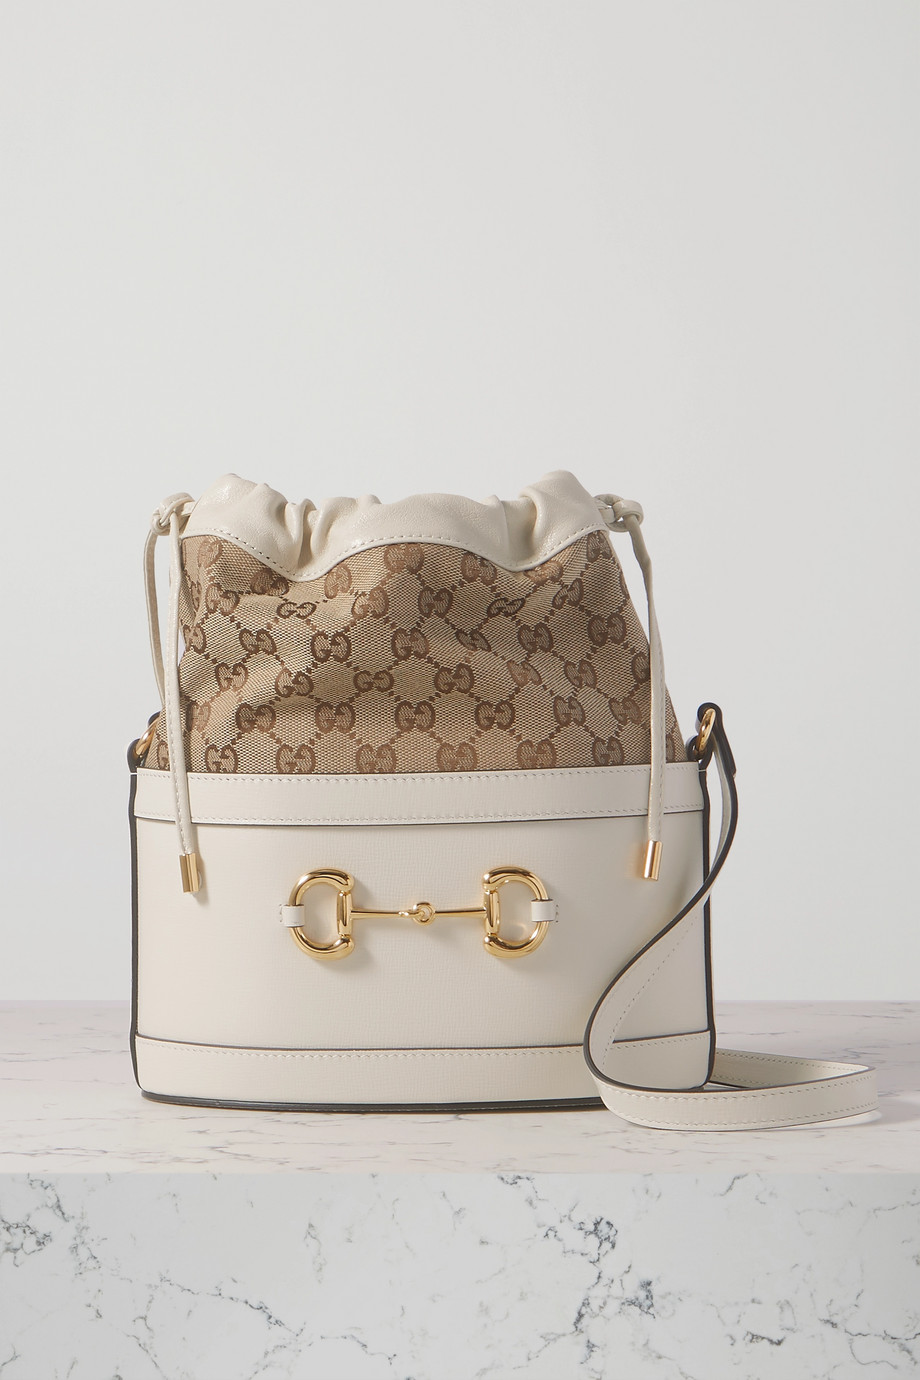 GUCCI 1955 Horsebit leather and printed coated-canvas bucket bag